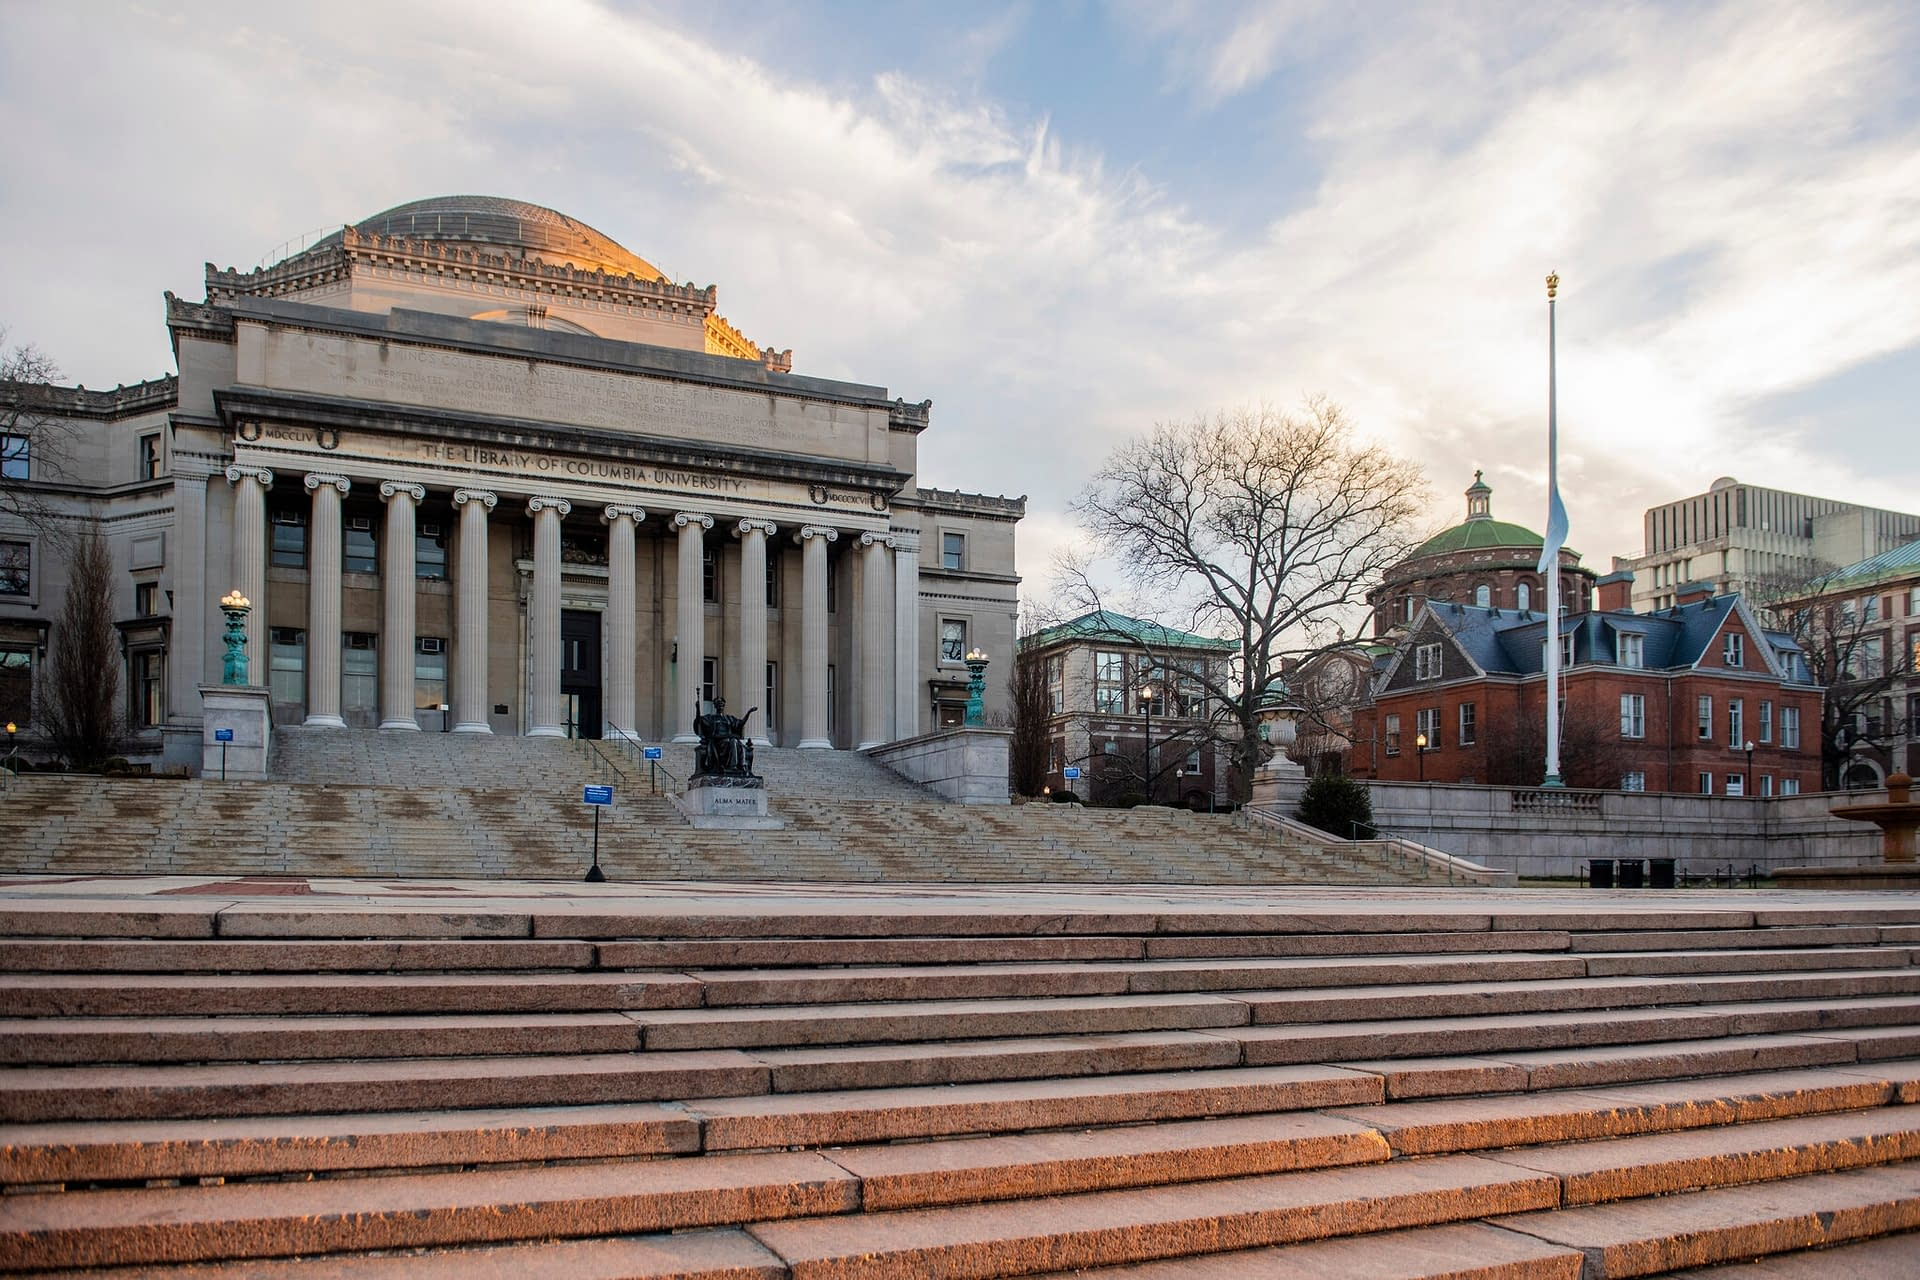 """Columbia Settles a Complicated Sexual Assault Case, """"Despite the Aggressive and Harrowing Attempts to Shame [My Client] Through the Court System, She Has No Regrets About Coming Forward With Her Complaint of Sexual Assault,"""" TFNLG Attorney Iliana Konidaris Said."""